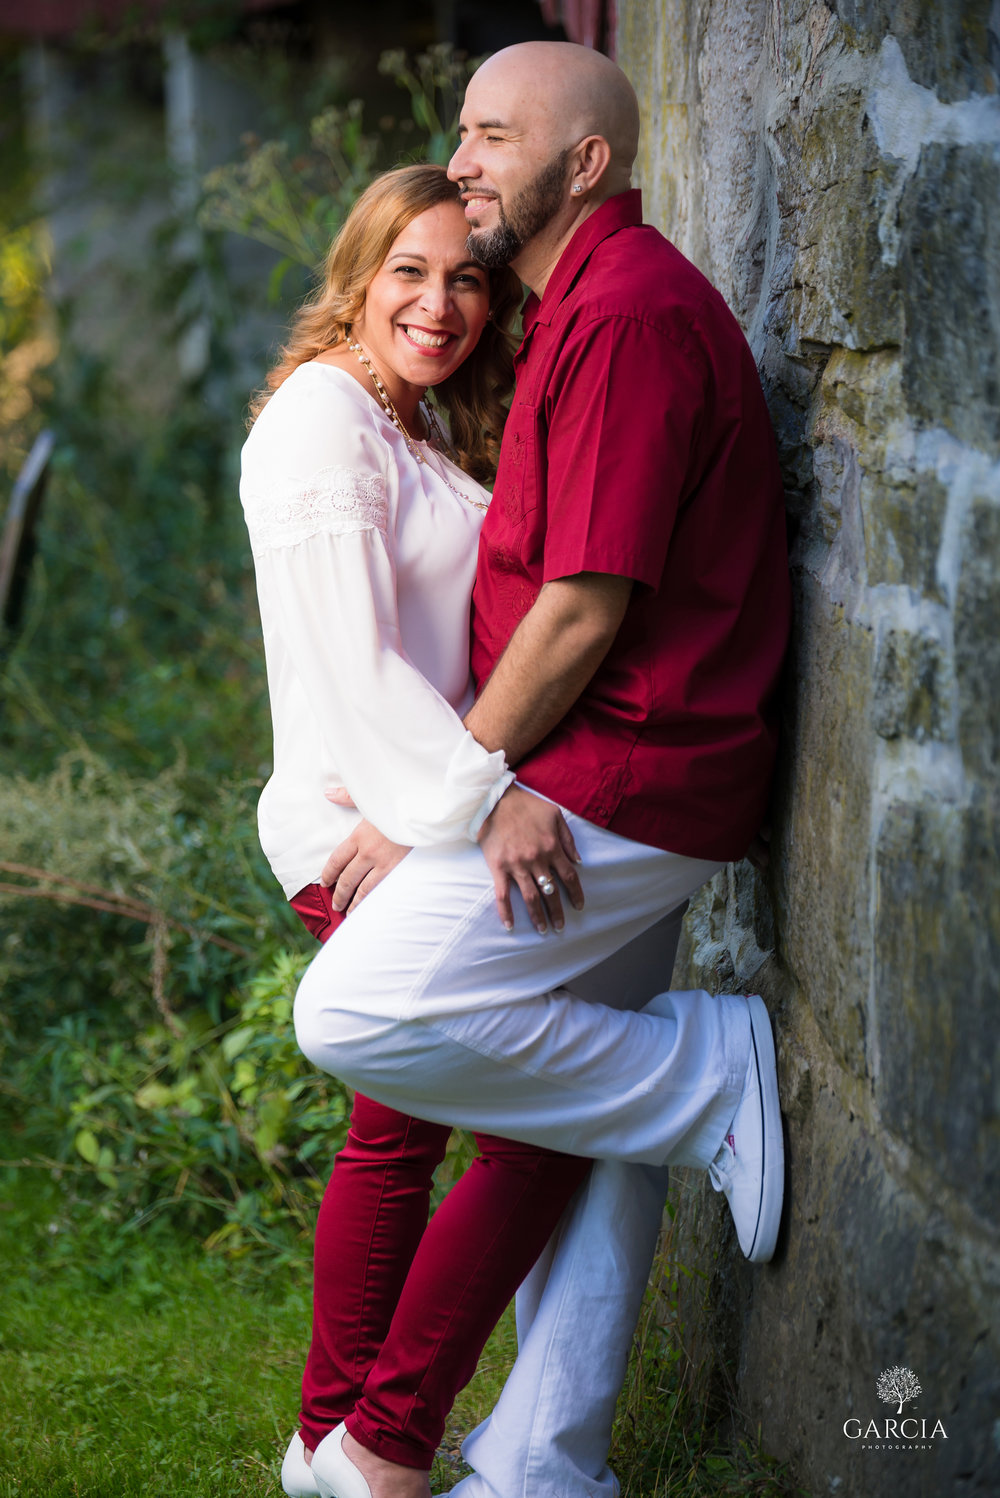 Irma-Tony-Engagement-Garcia-Photography-1492.jpg